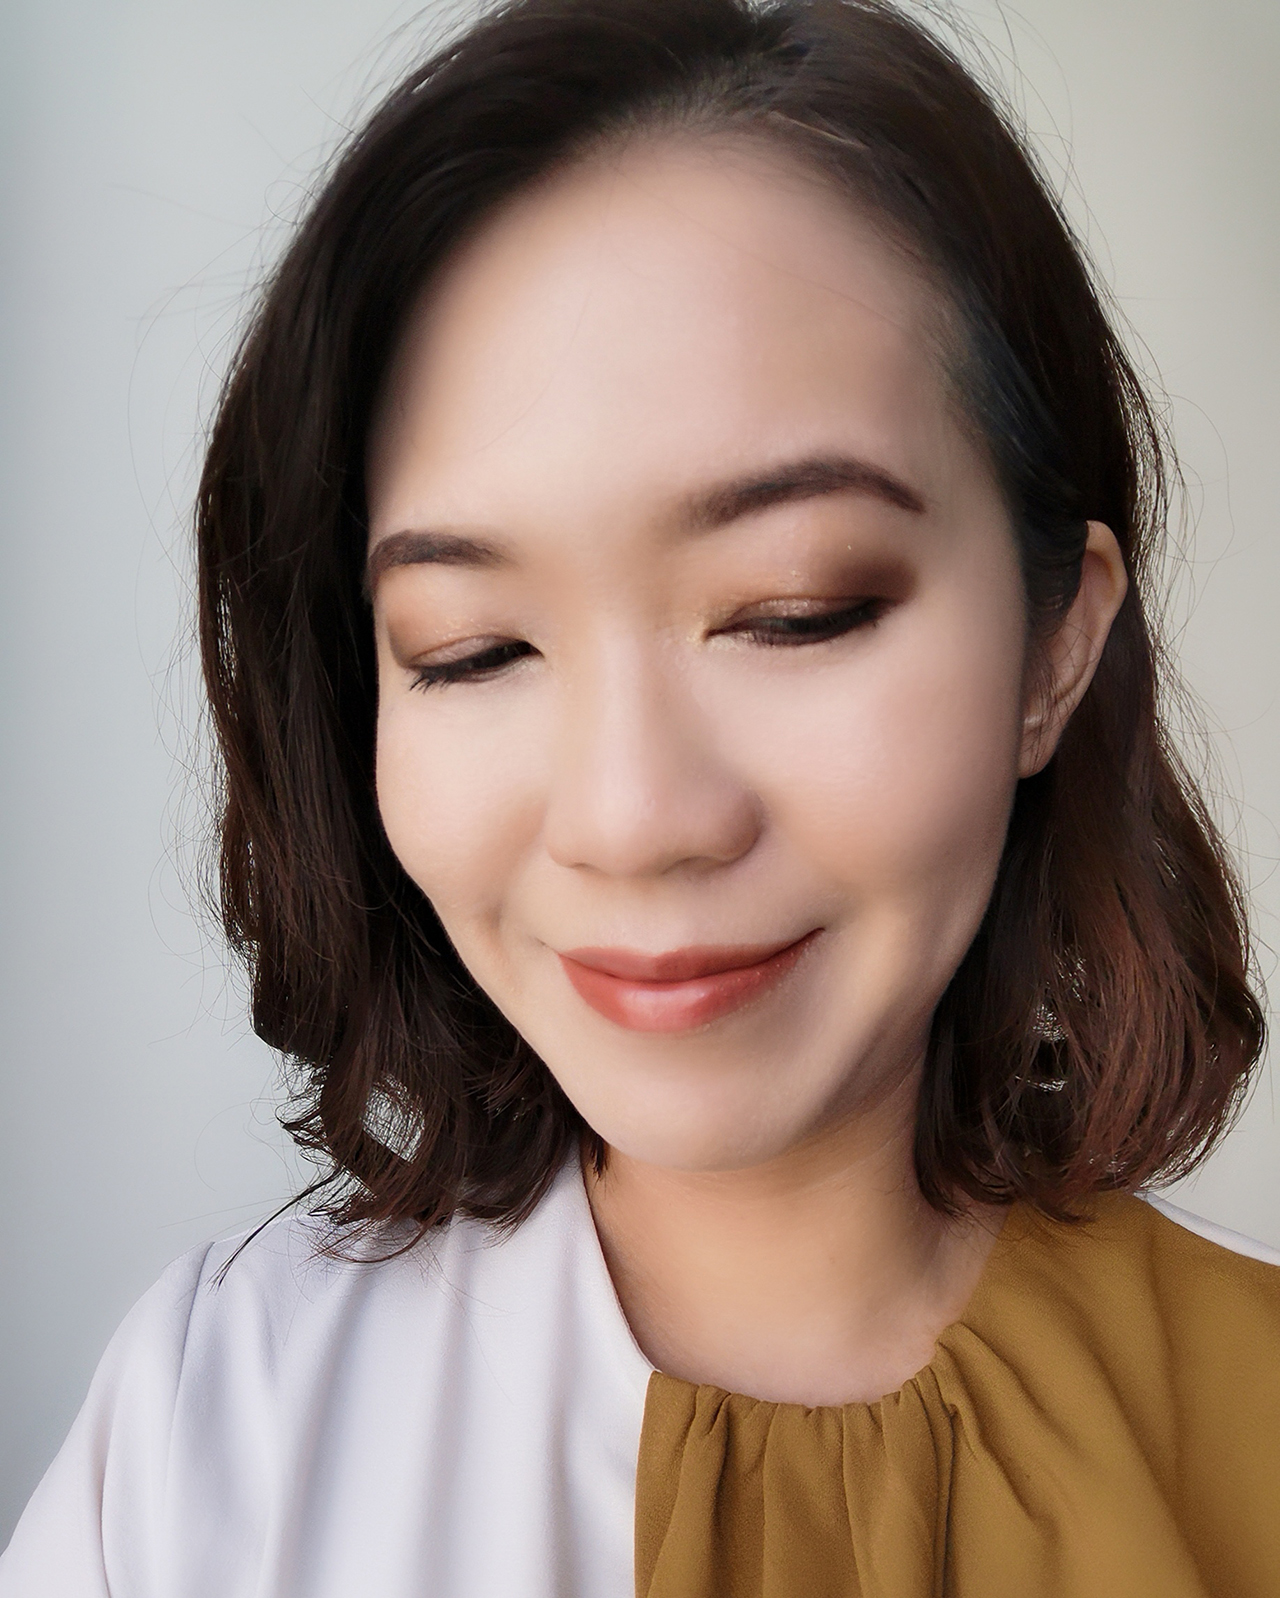 Lunasol The Beige makeup look